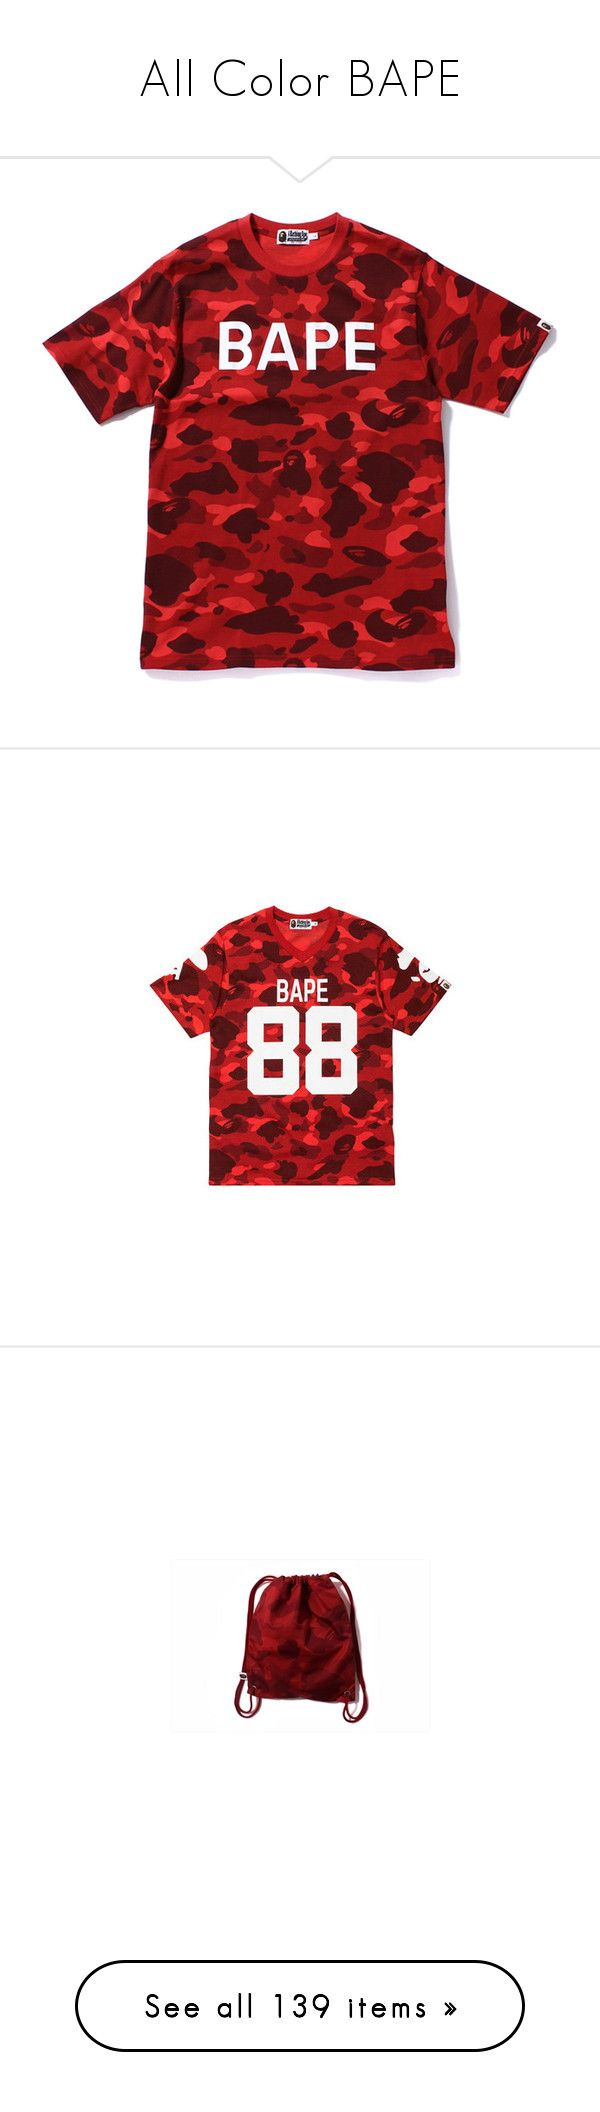 """All Color BAPE"" by xxxfasiontrendsxxx ❤ liked on Polyvore featuring tops, t-shirts, shirts, t shirt, t-shirt's, red camo shirt, camouflage shirts, cotton shirts, cotton tee and tee-shirt"